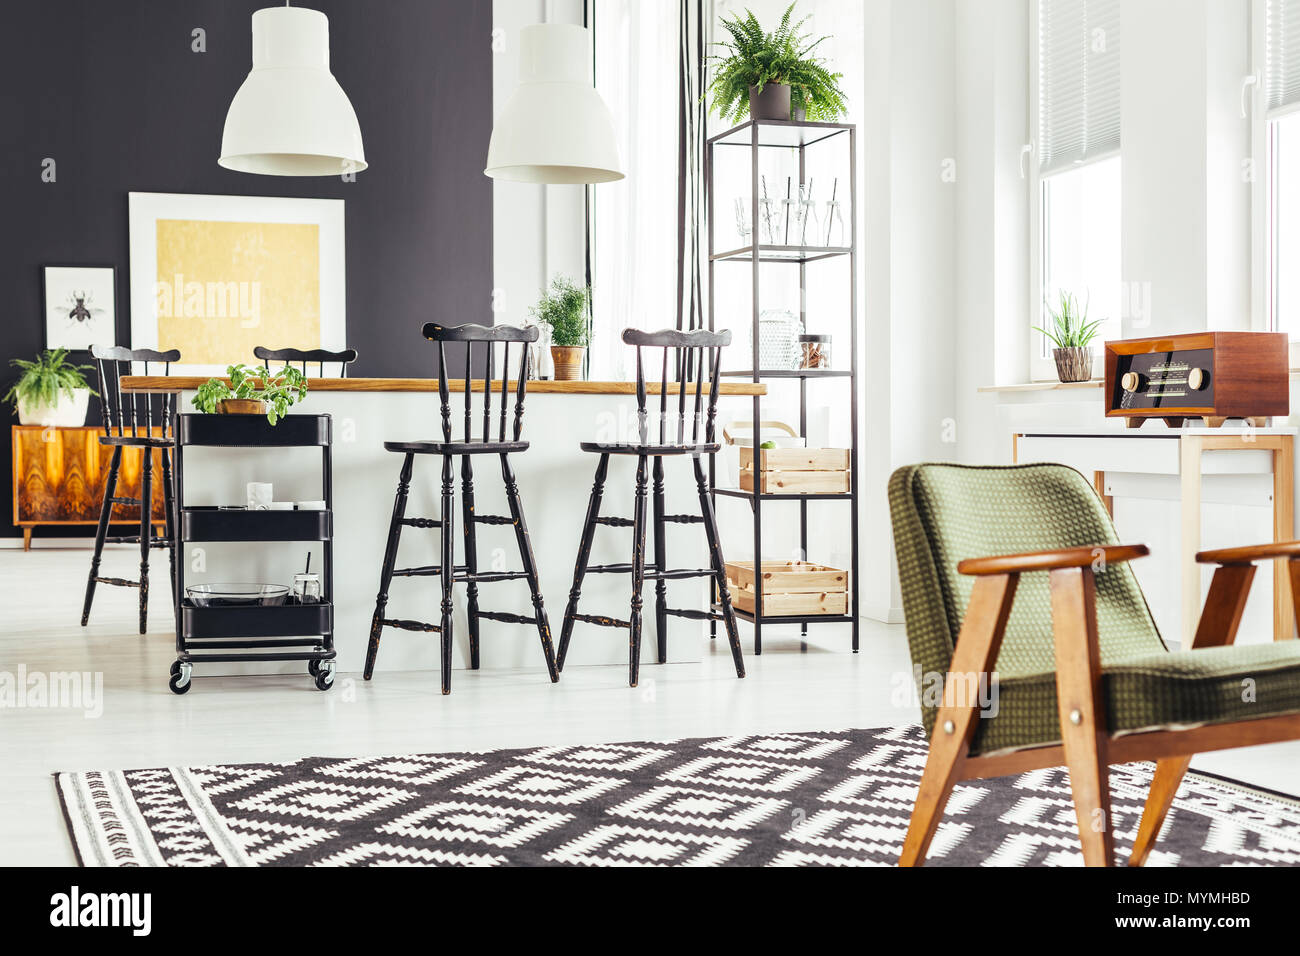 Rustic Green Chair On Black And White Geometric Carpet In Kitchen With Bar Stools At Countertop Stock Photo Alamy